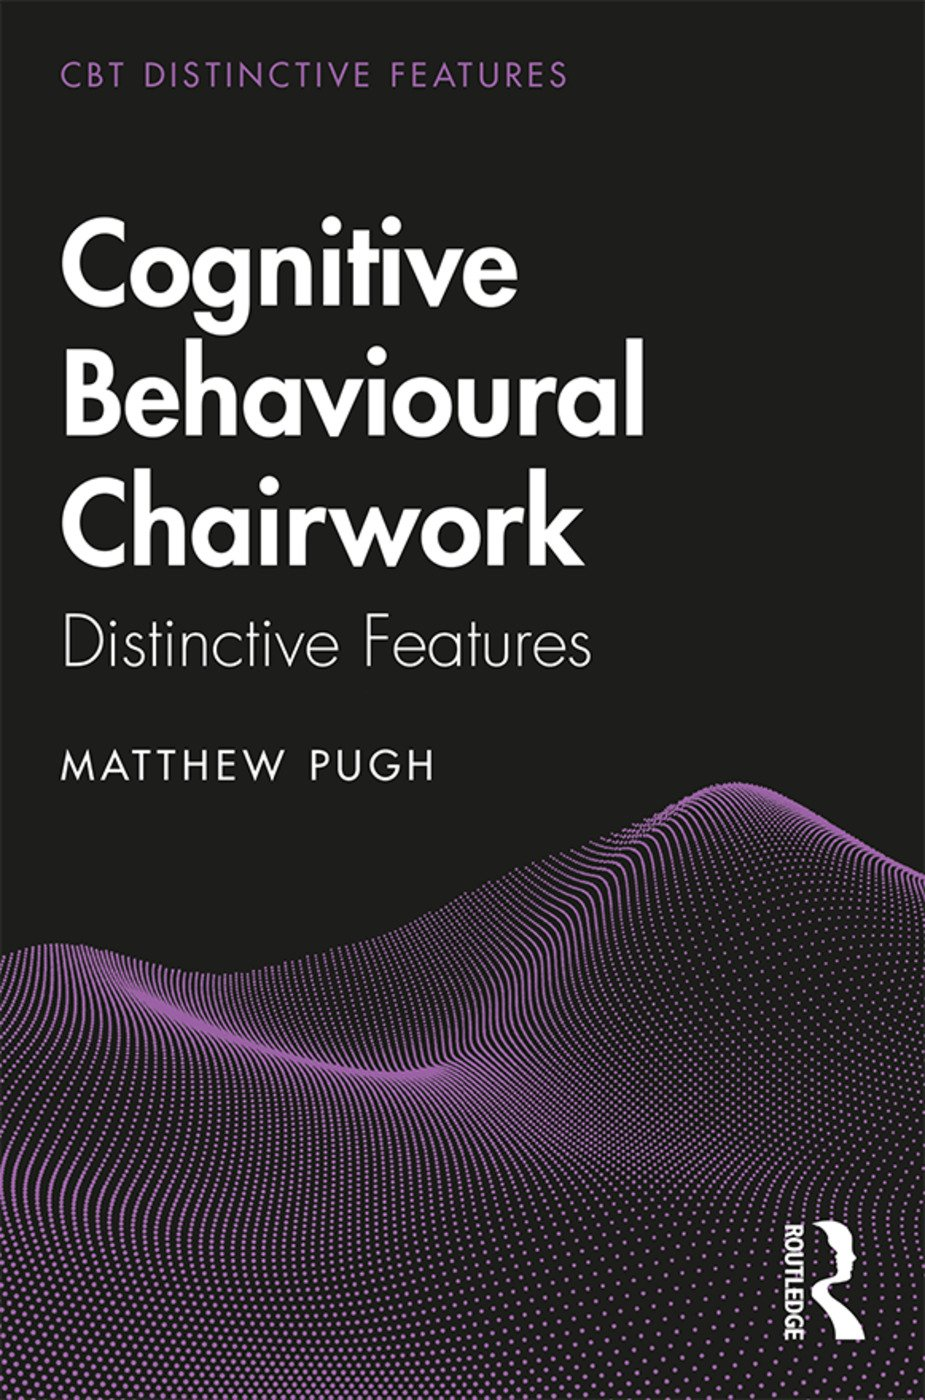 Cognitive and Behavioural Chairwork: Distinctive Features book cover